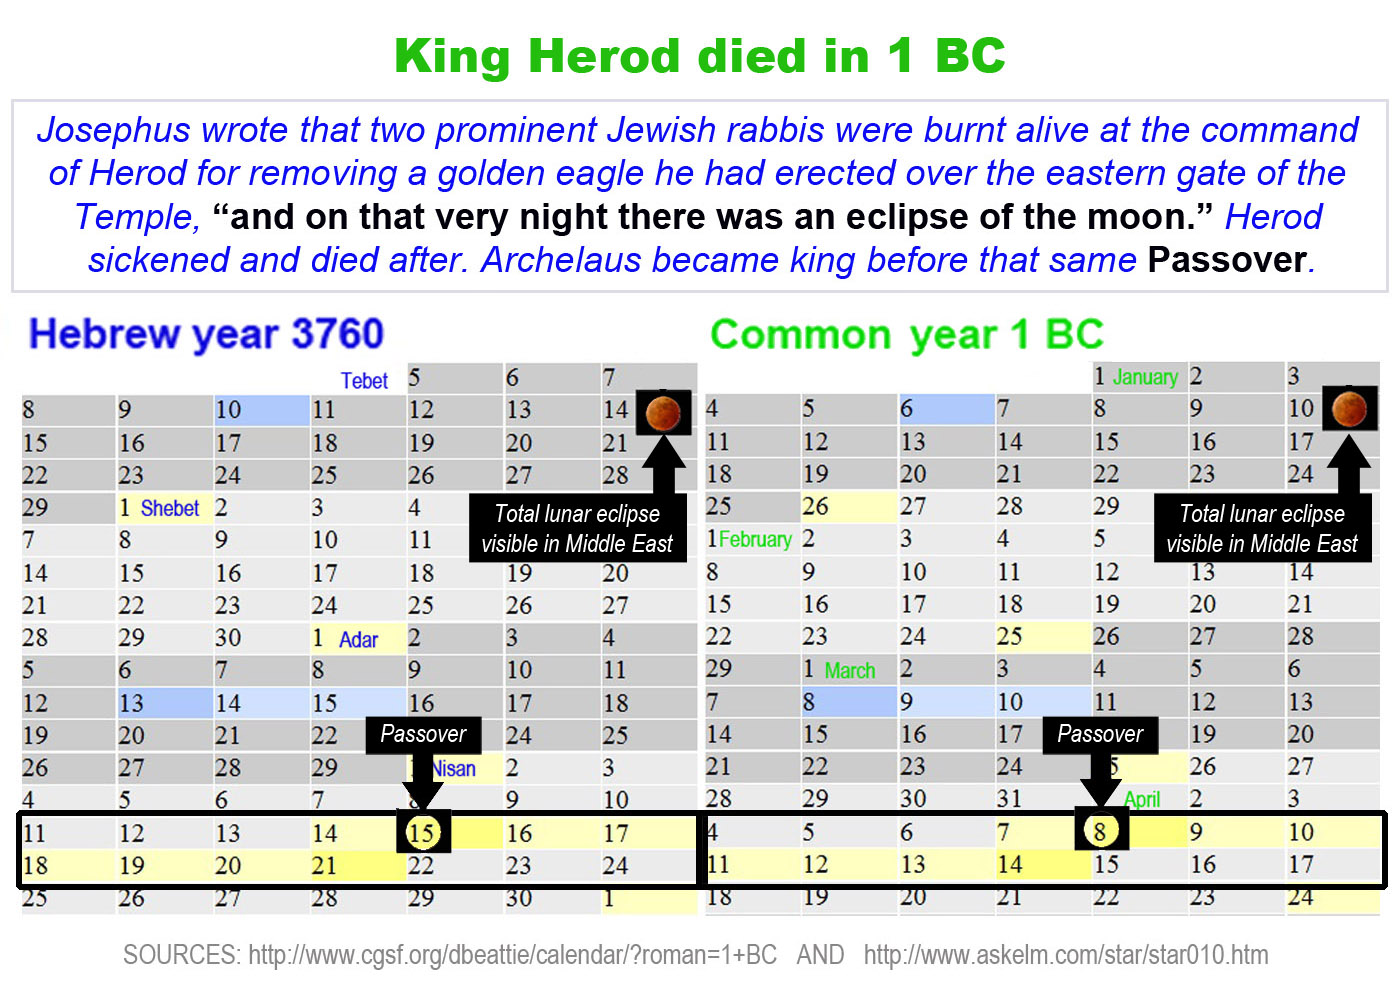 Herod the Great died in 1 BC |